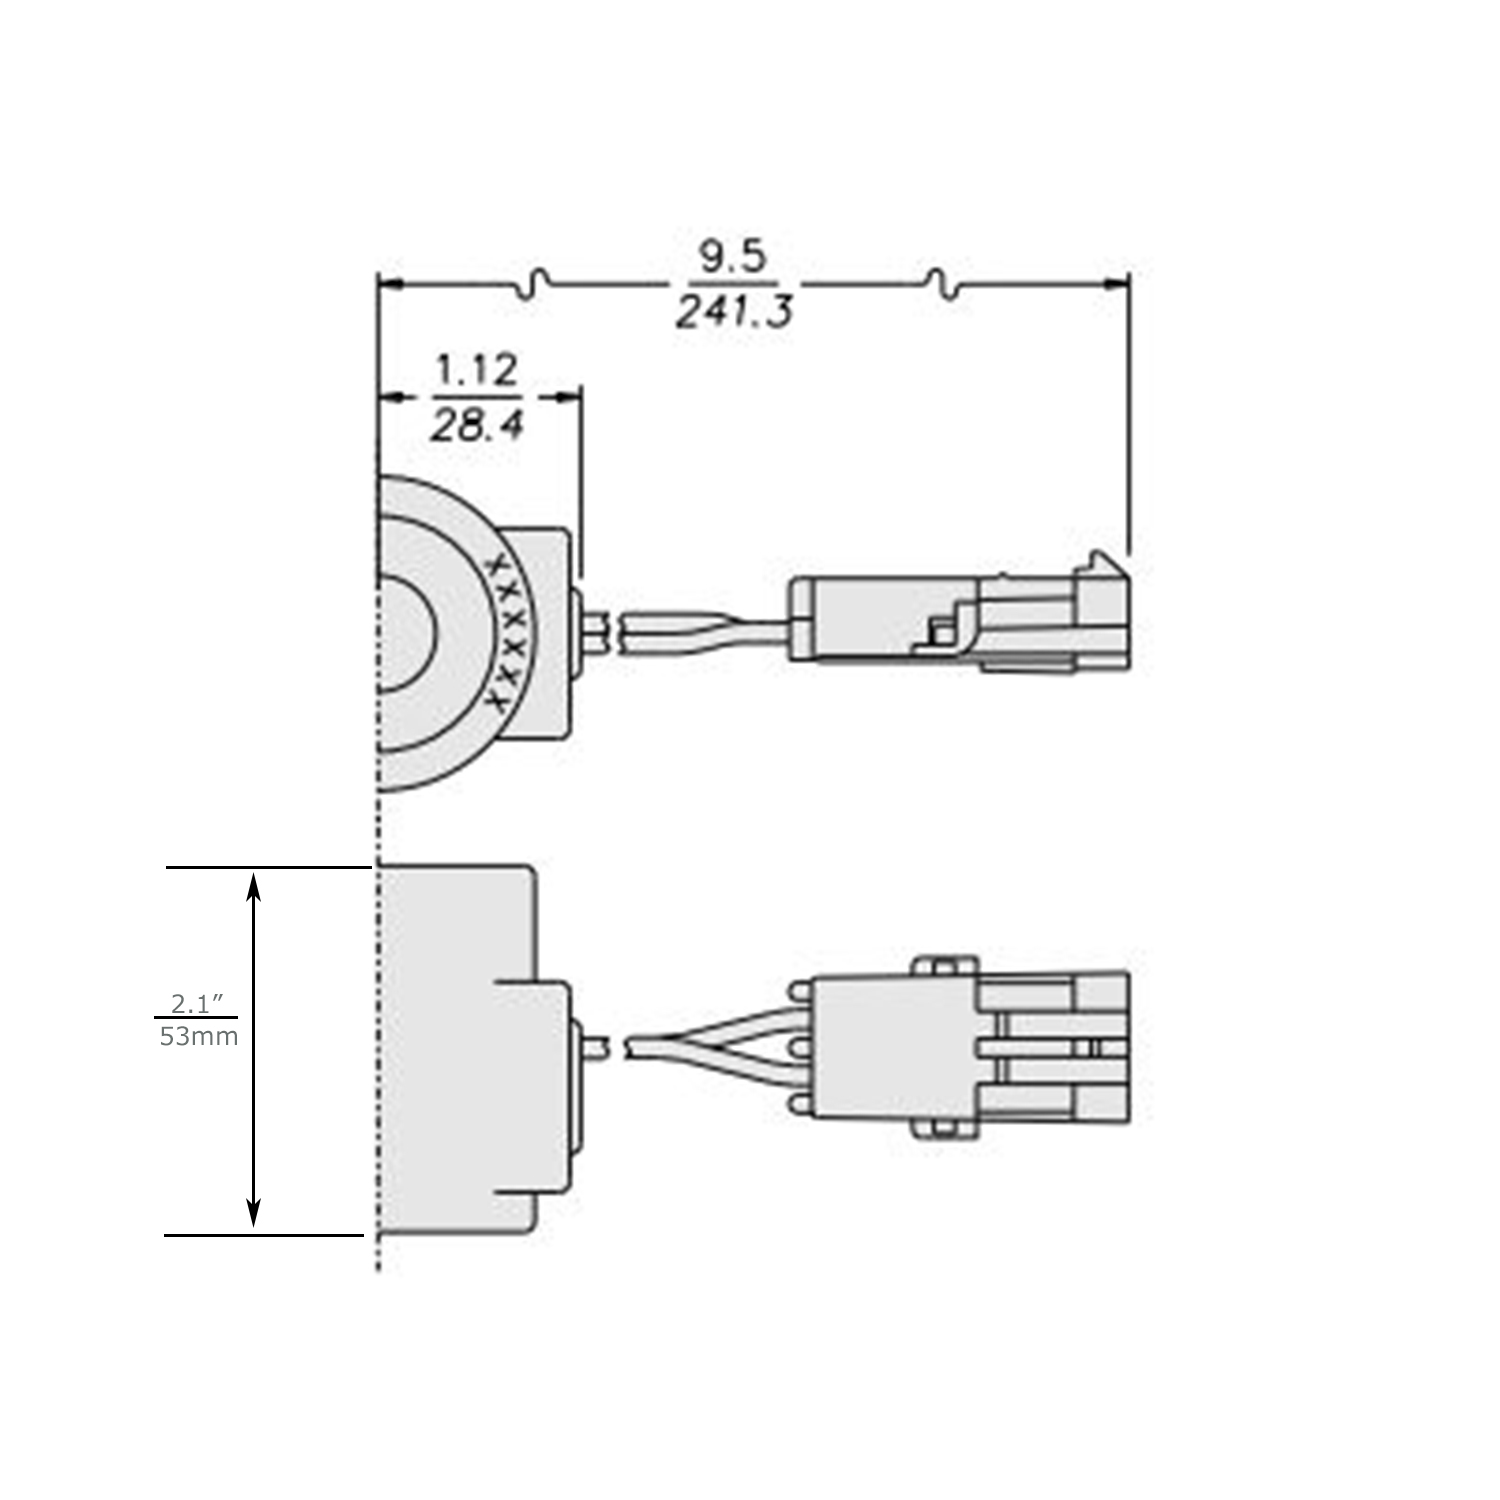 hight resolution of hydraforce 6359739 dana spicer 4215418 solenoid coilvoltage 24 voltsconnection weather packzener diode